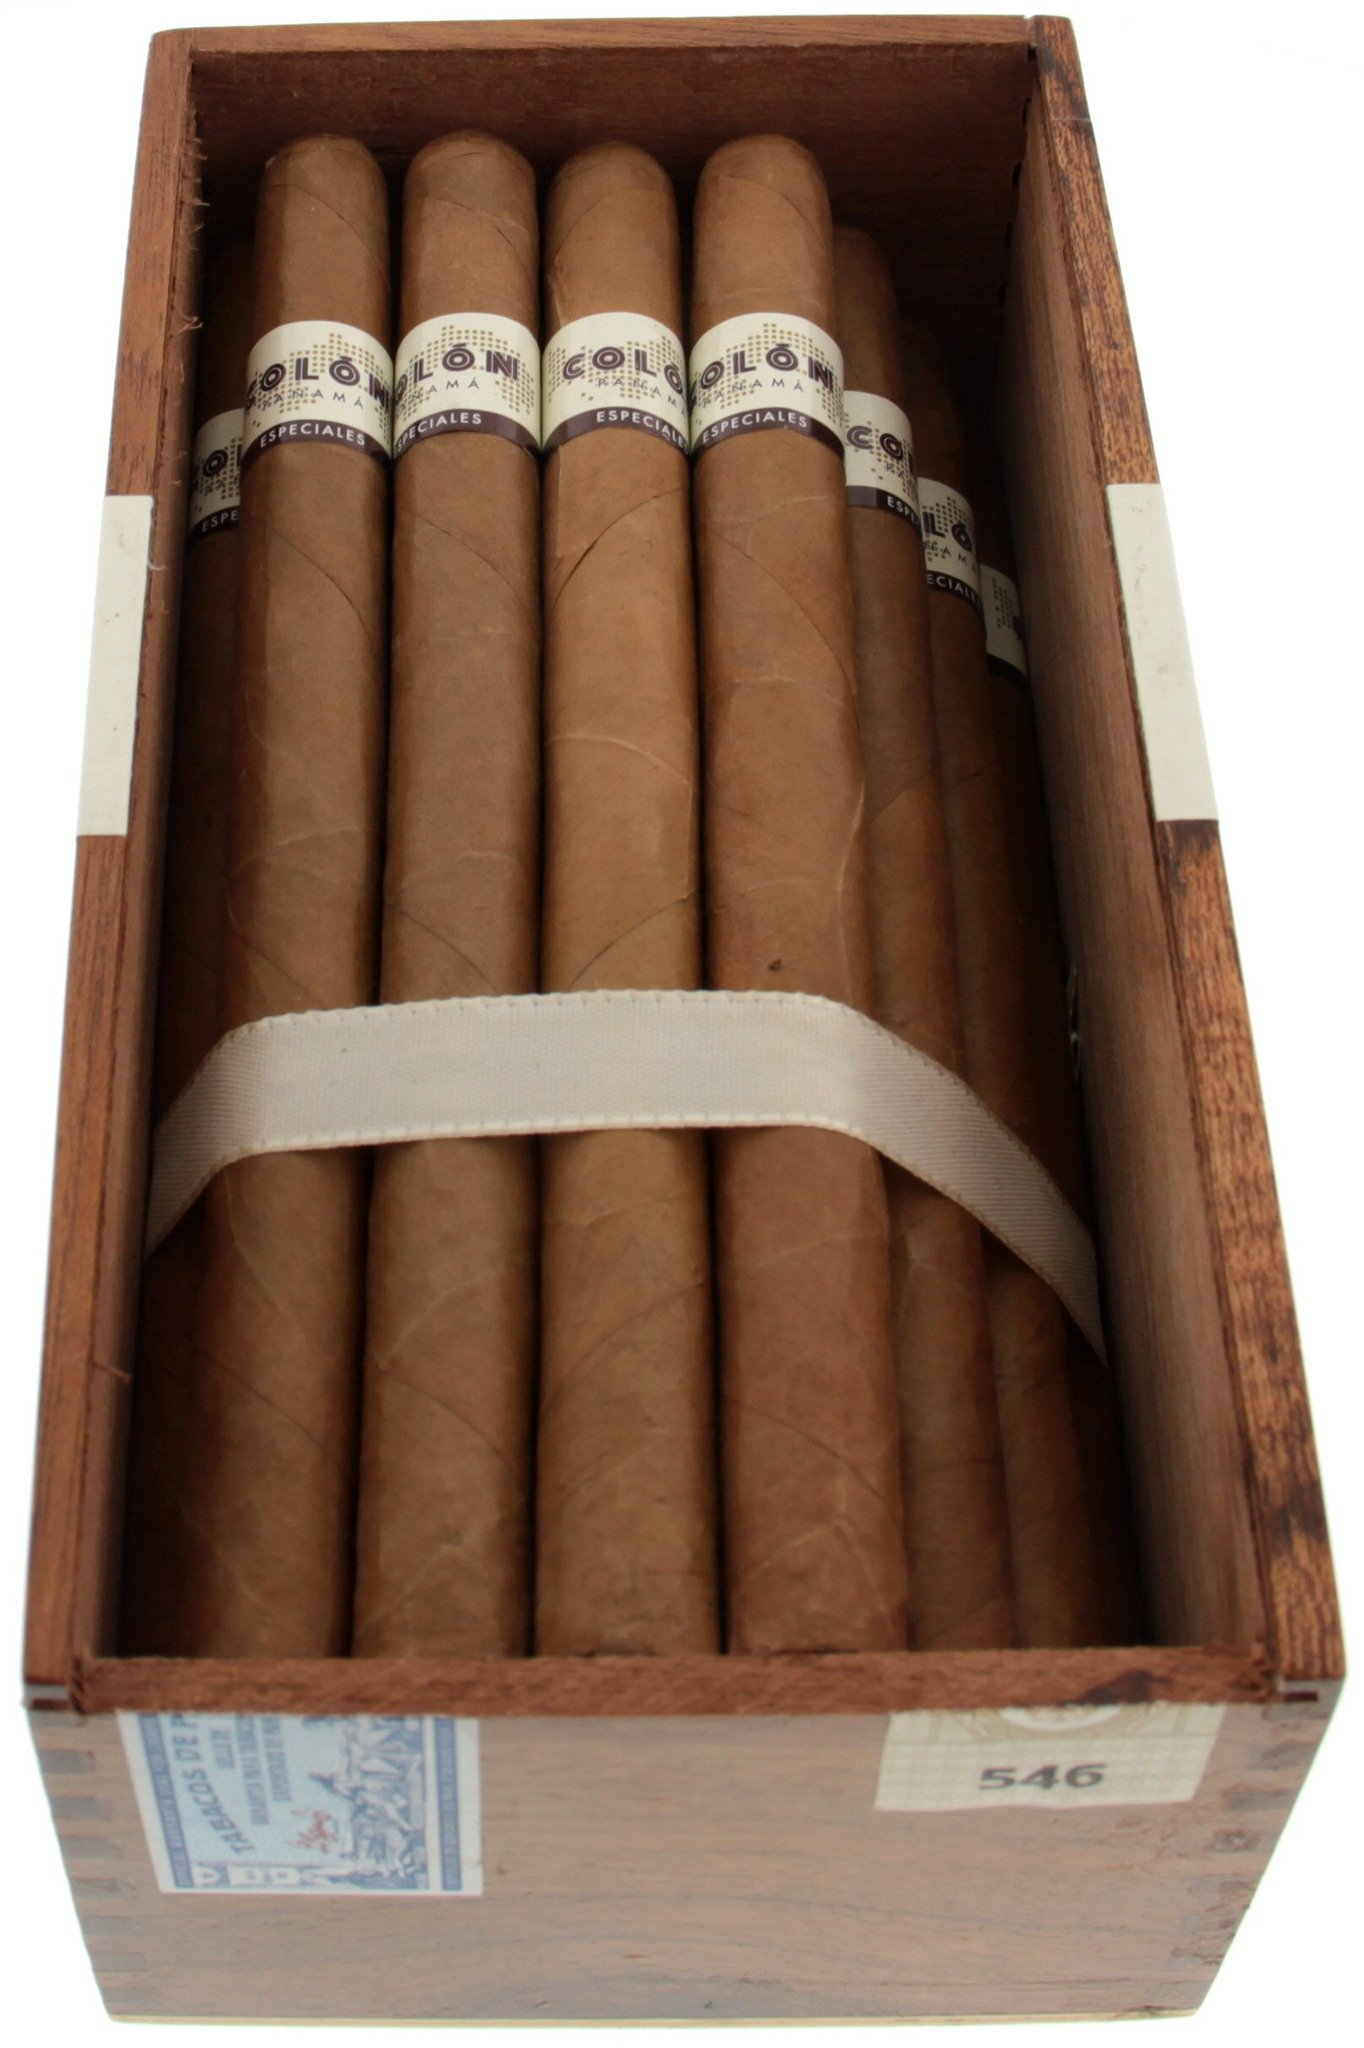 Colon Especiales No 5 V Cigarworldde Zigarren Panama